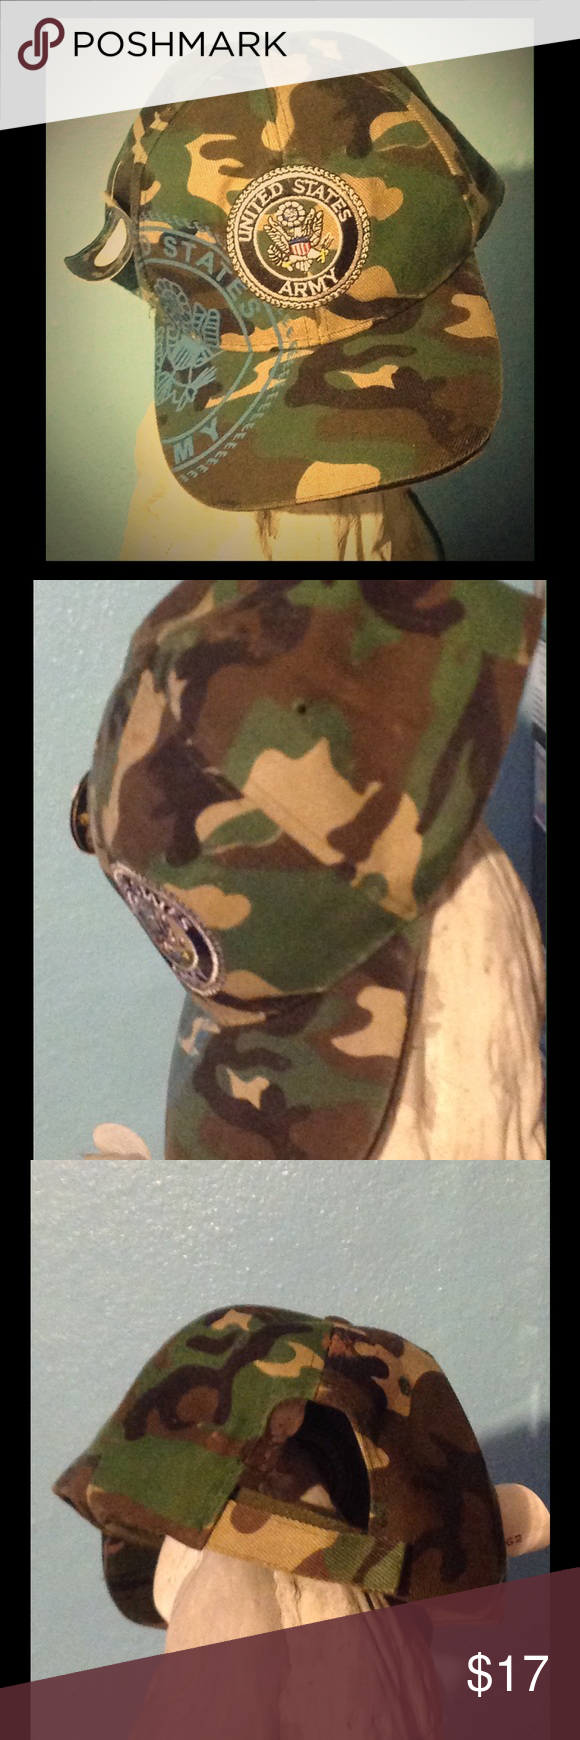 Camo army designer hat cap Camouflage, u.s. Army symbol with designs. Adjustable new cap Other